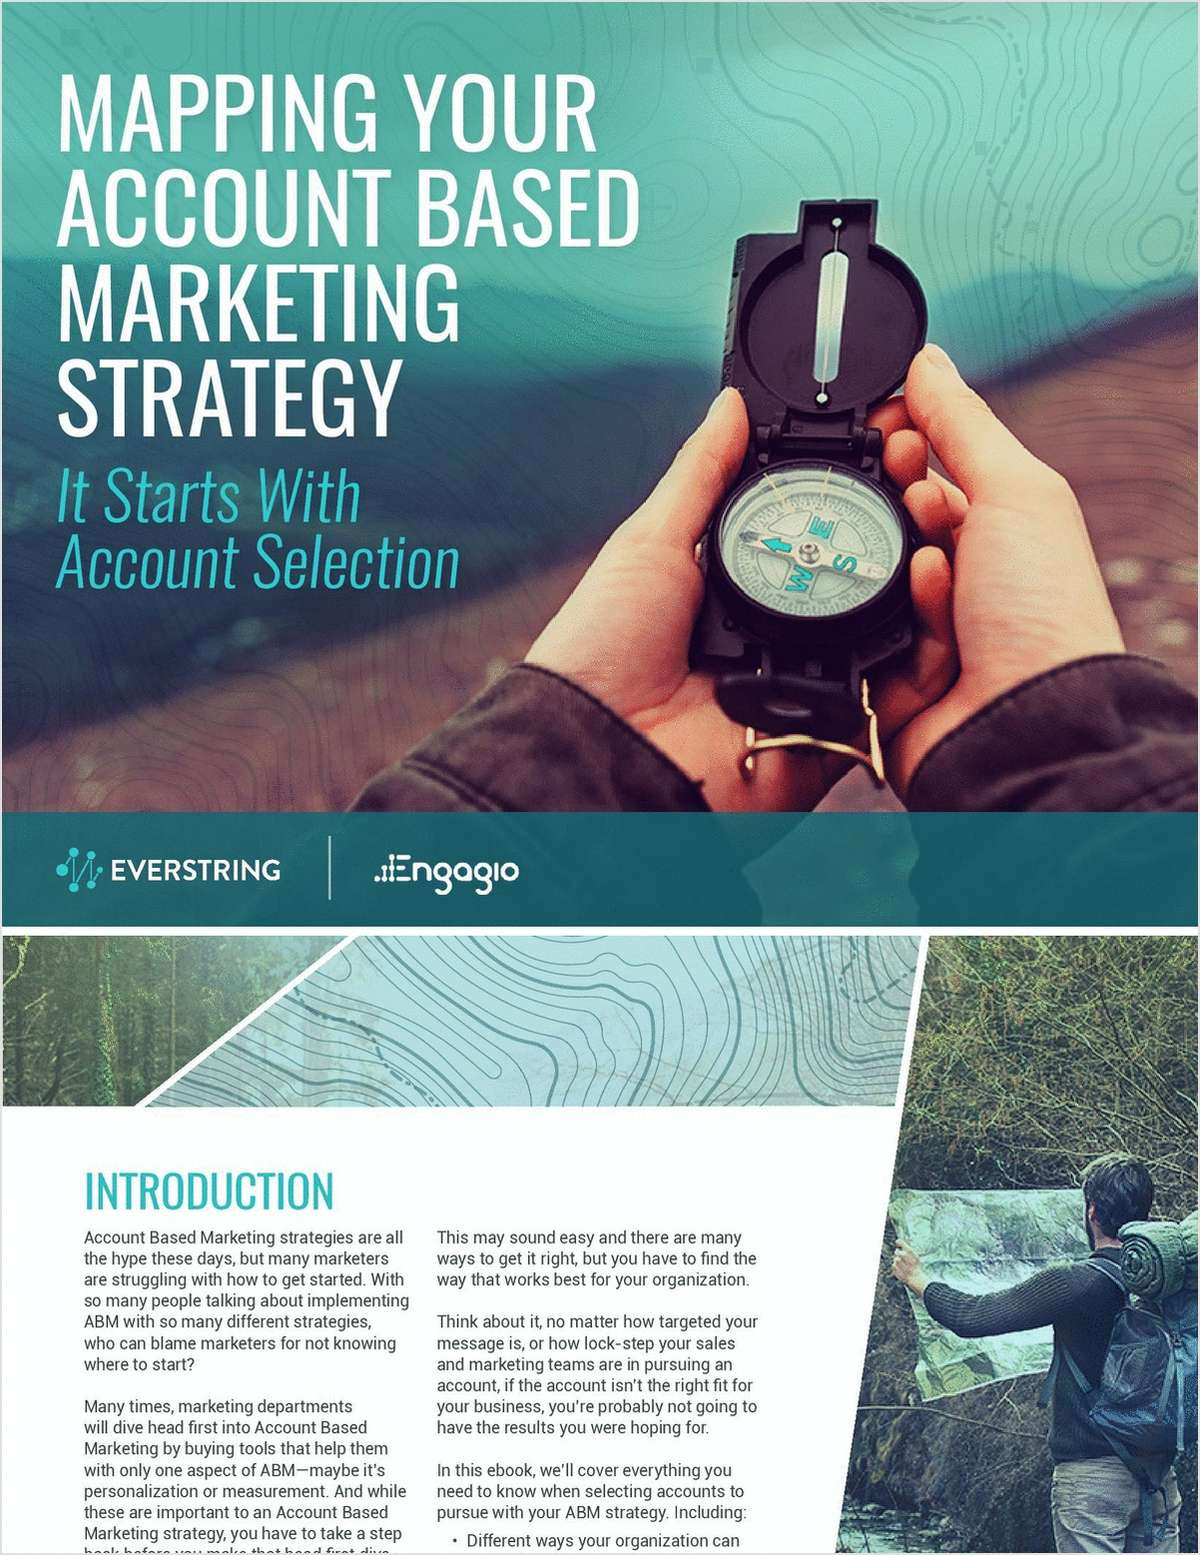 Mapping Your Account Based Marketing Strategy - It Starts With Account Selection